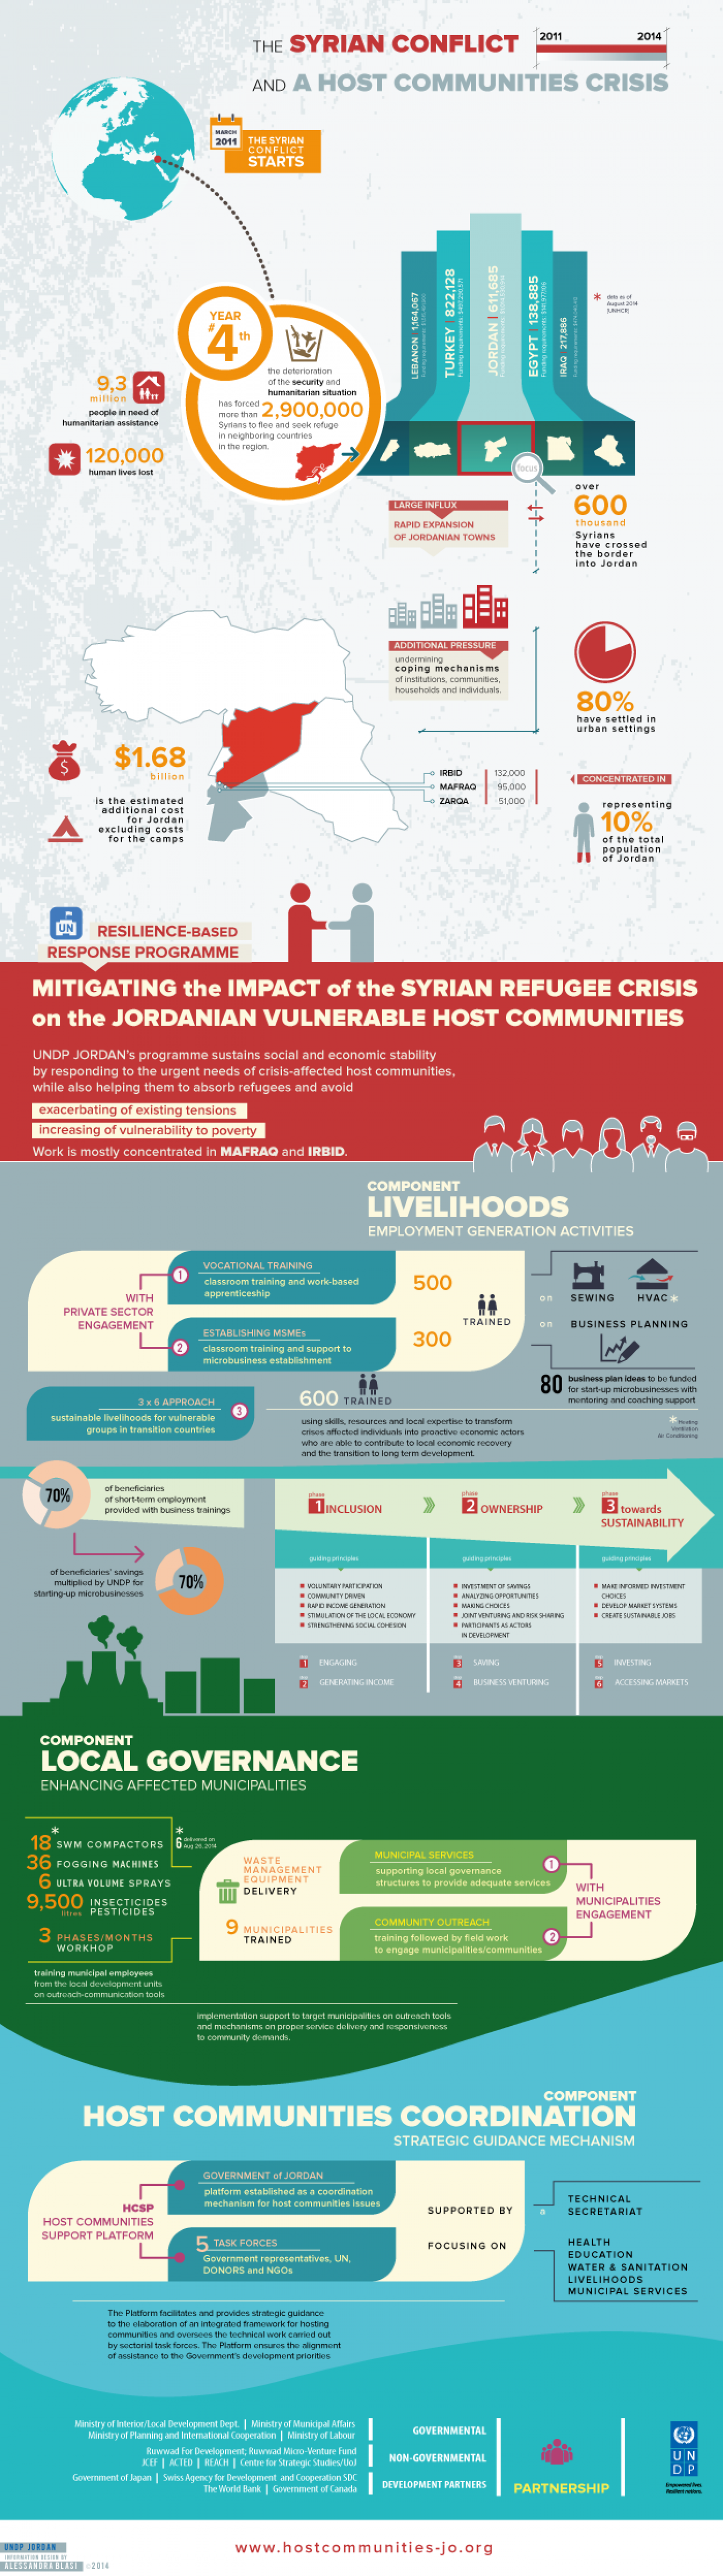 the Syrian conflict and a Host Communities crisis Infographic